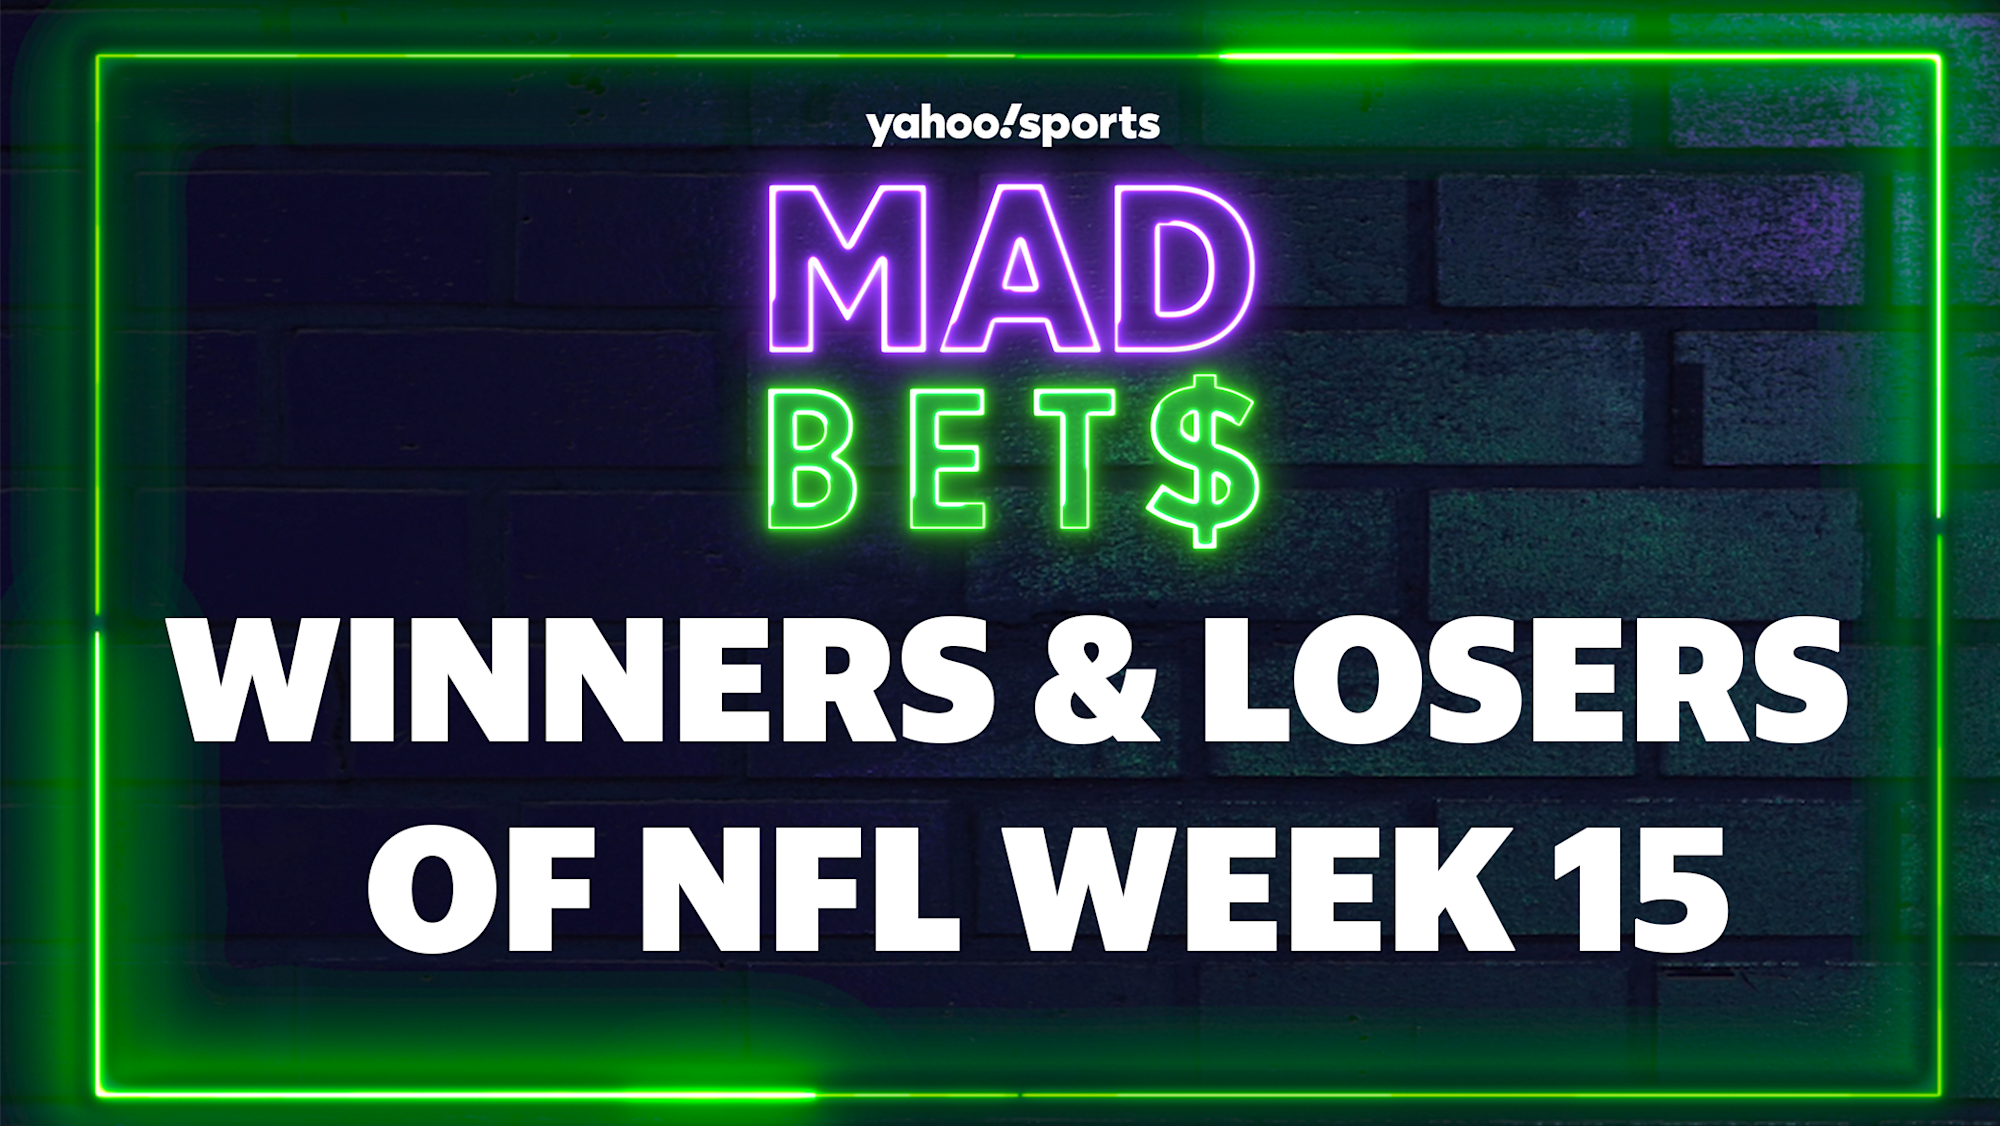 nfl betting lines by yahoo